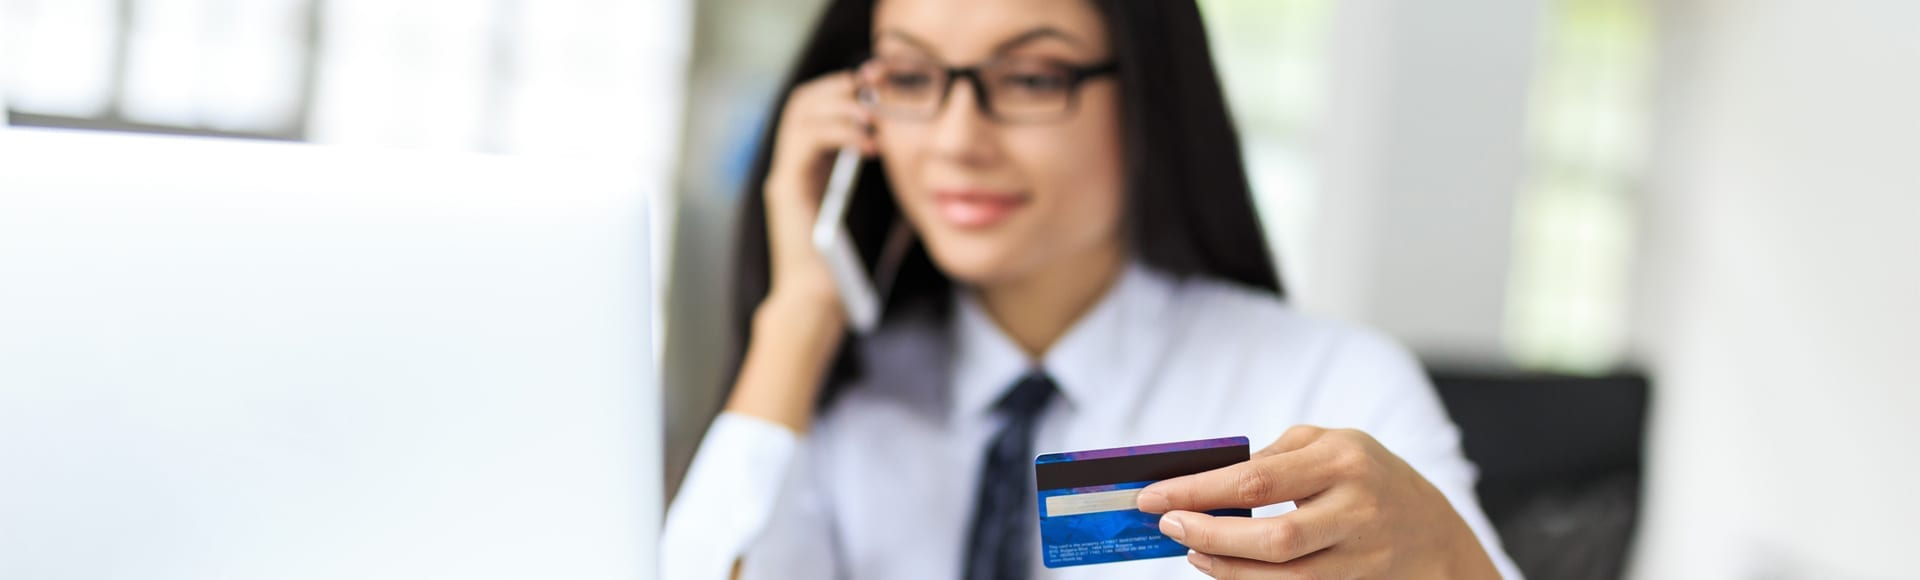 A smiling business woman on the phone holding an aesthetic credit card in hand